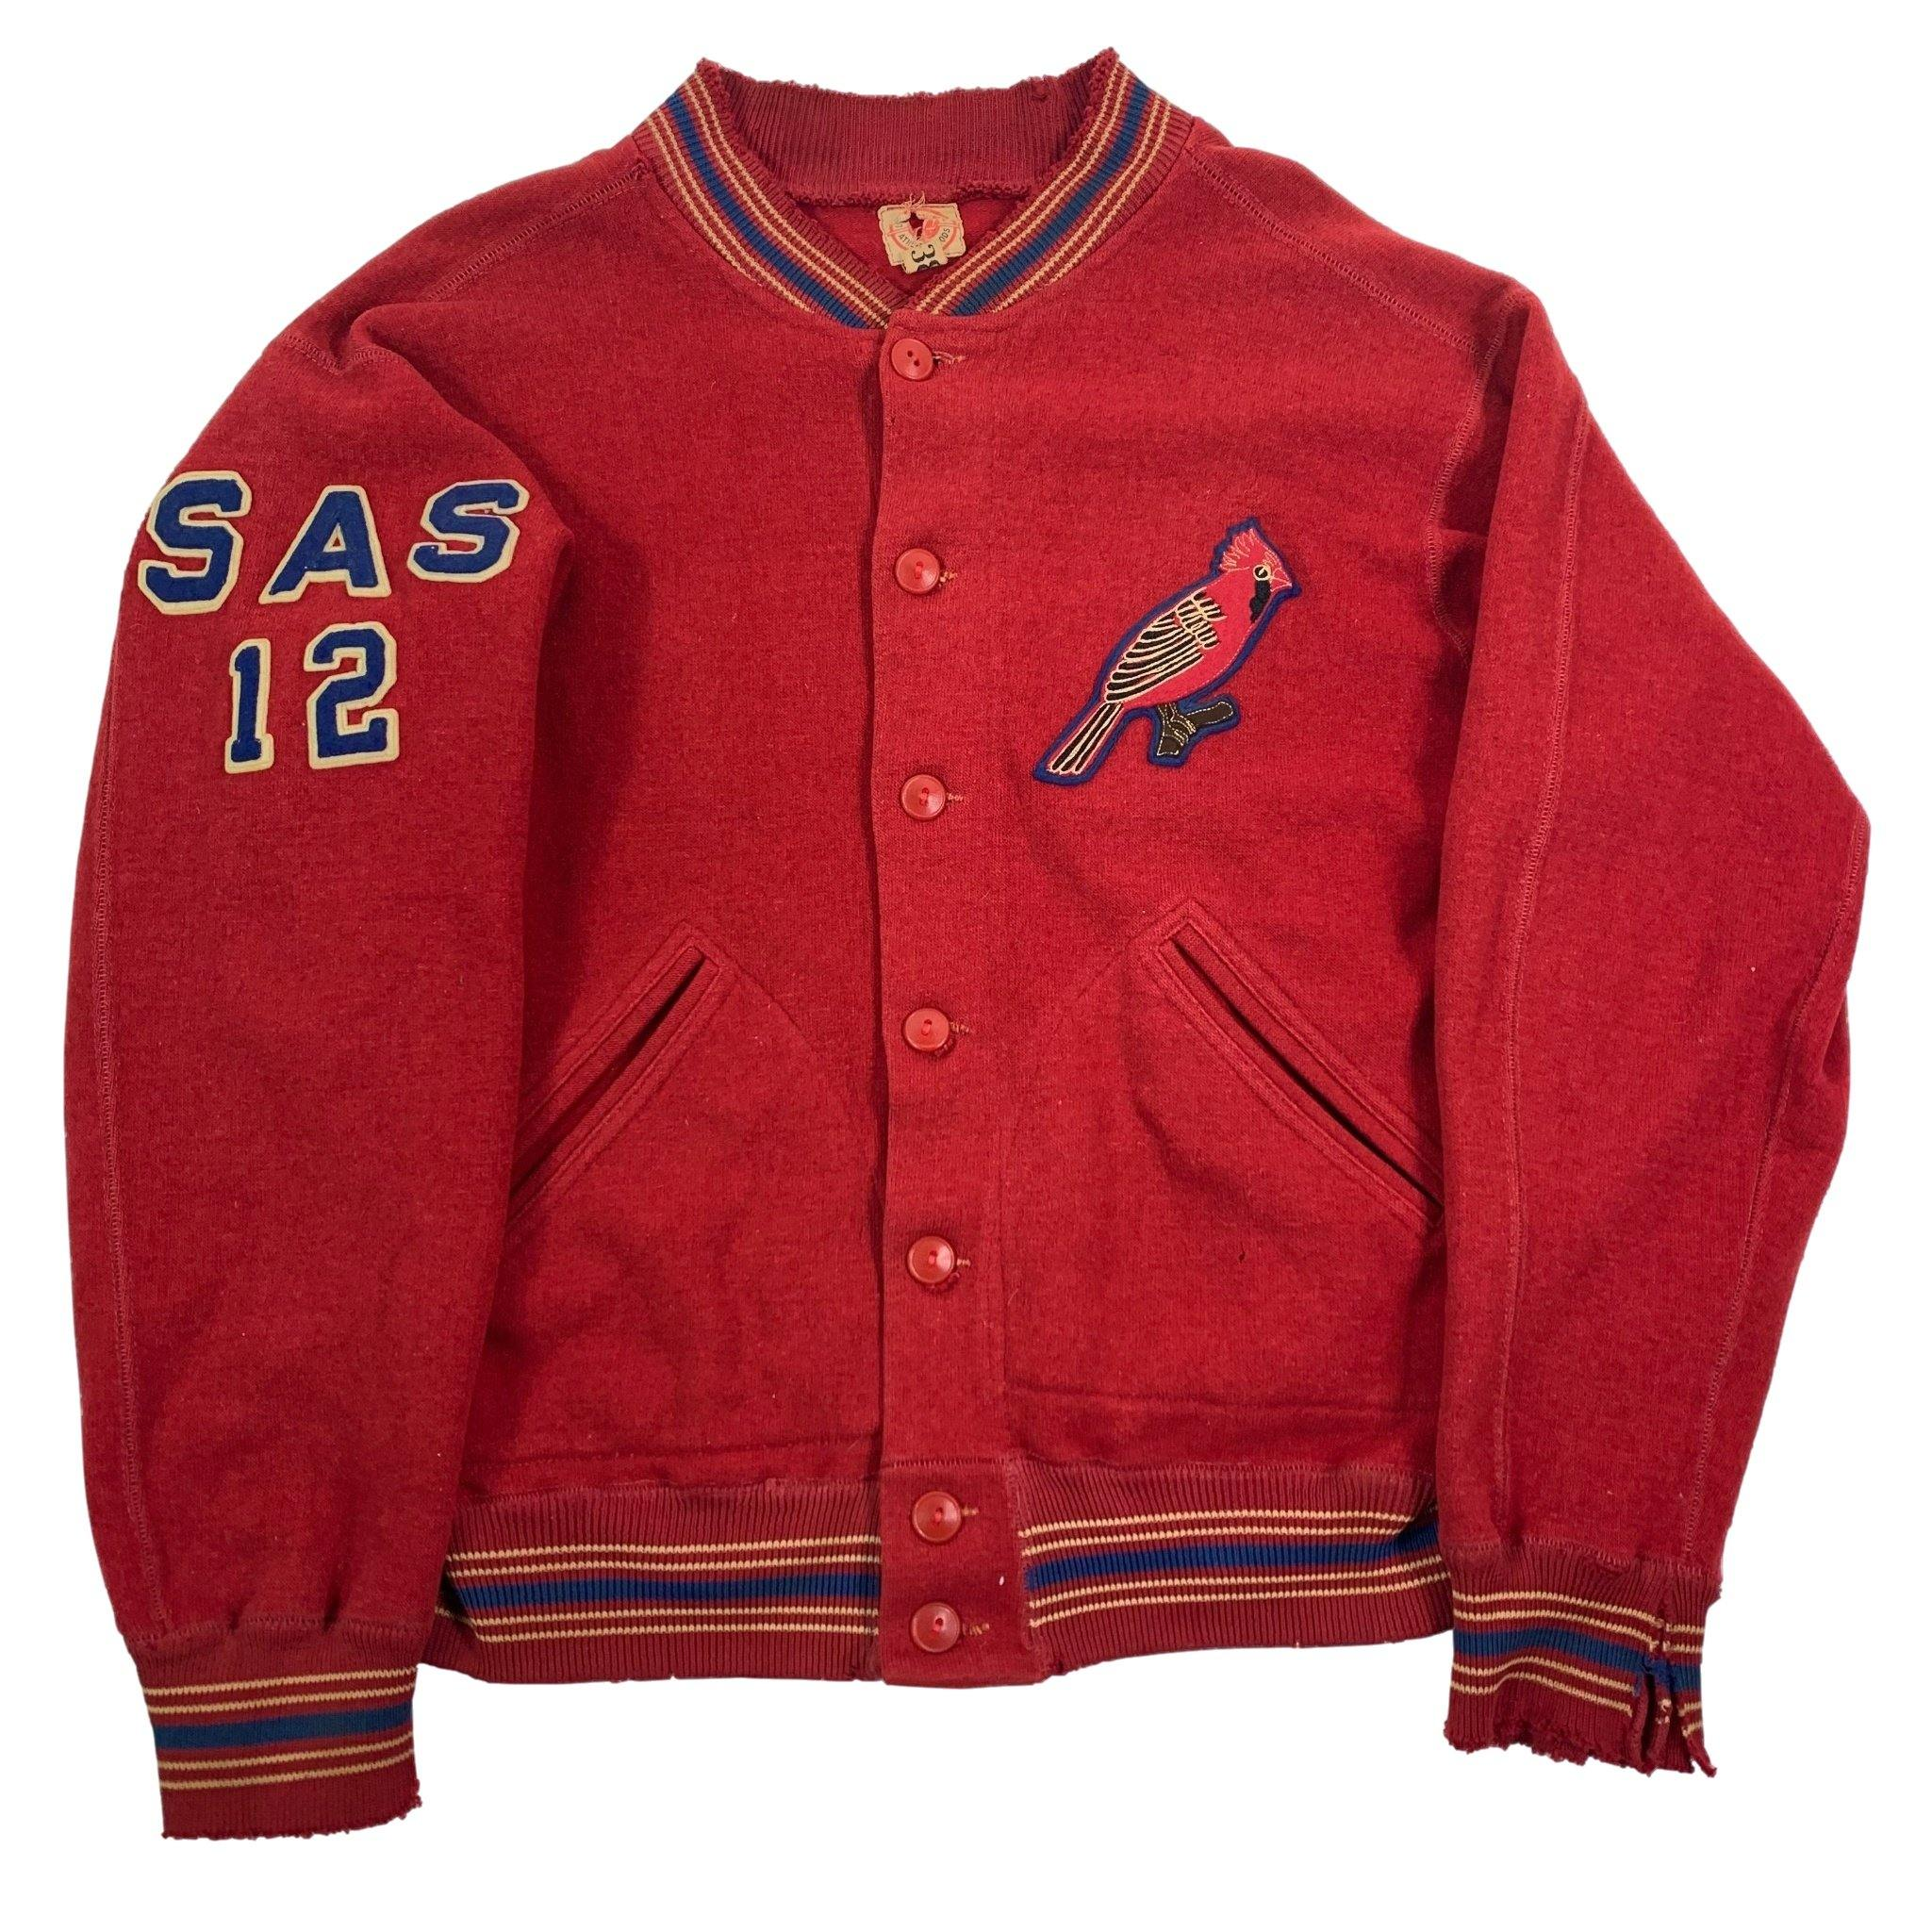 "Vintage Lowe & Campbell Athletic Goods ""SAS 12"" Jacket"